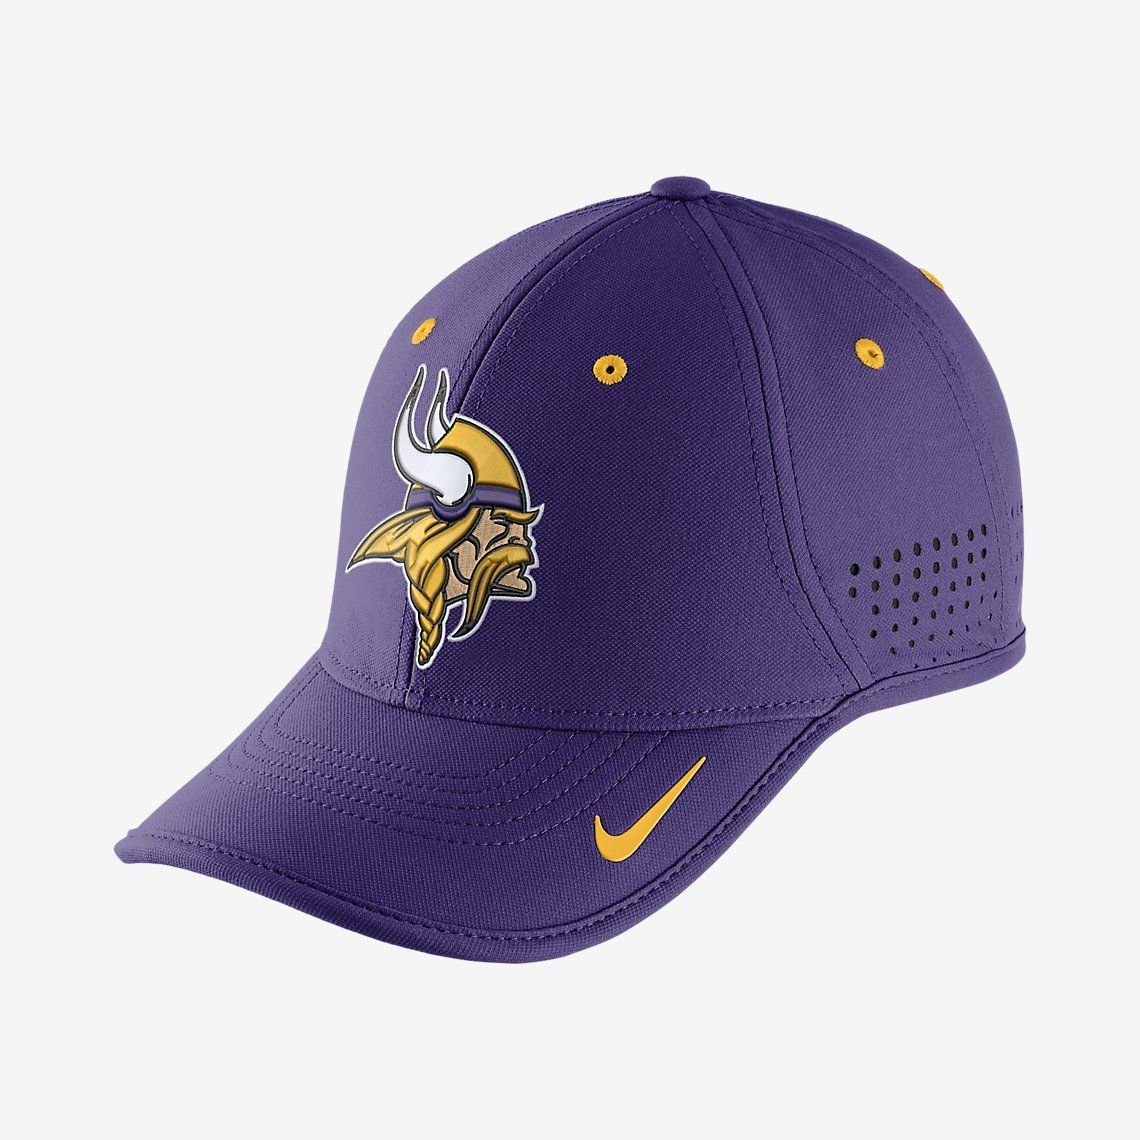 Nike True Vapor (NFL Vikings) Adjustable Hat. Nike.com